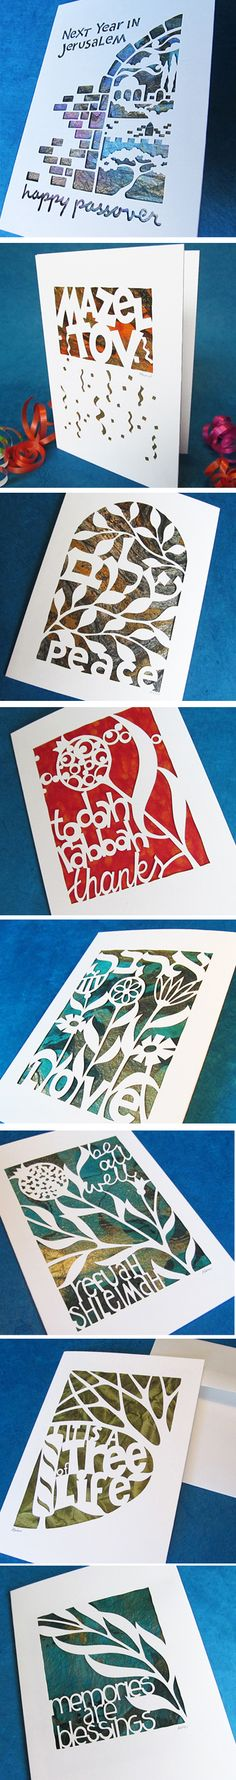 Not your Bubbe's greeting card. #Jewishgreetingcards in #Papercut art, fine and handmade papers, original designs, for all occasions. http://www.hebrica.com/ #judaism #jewish